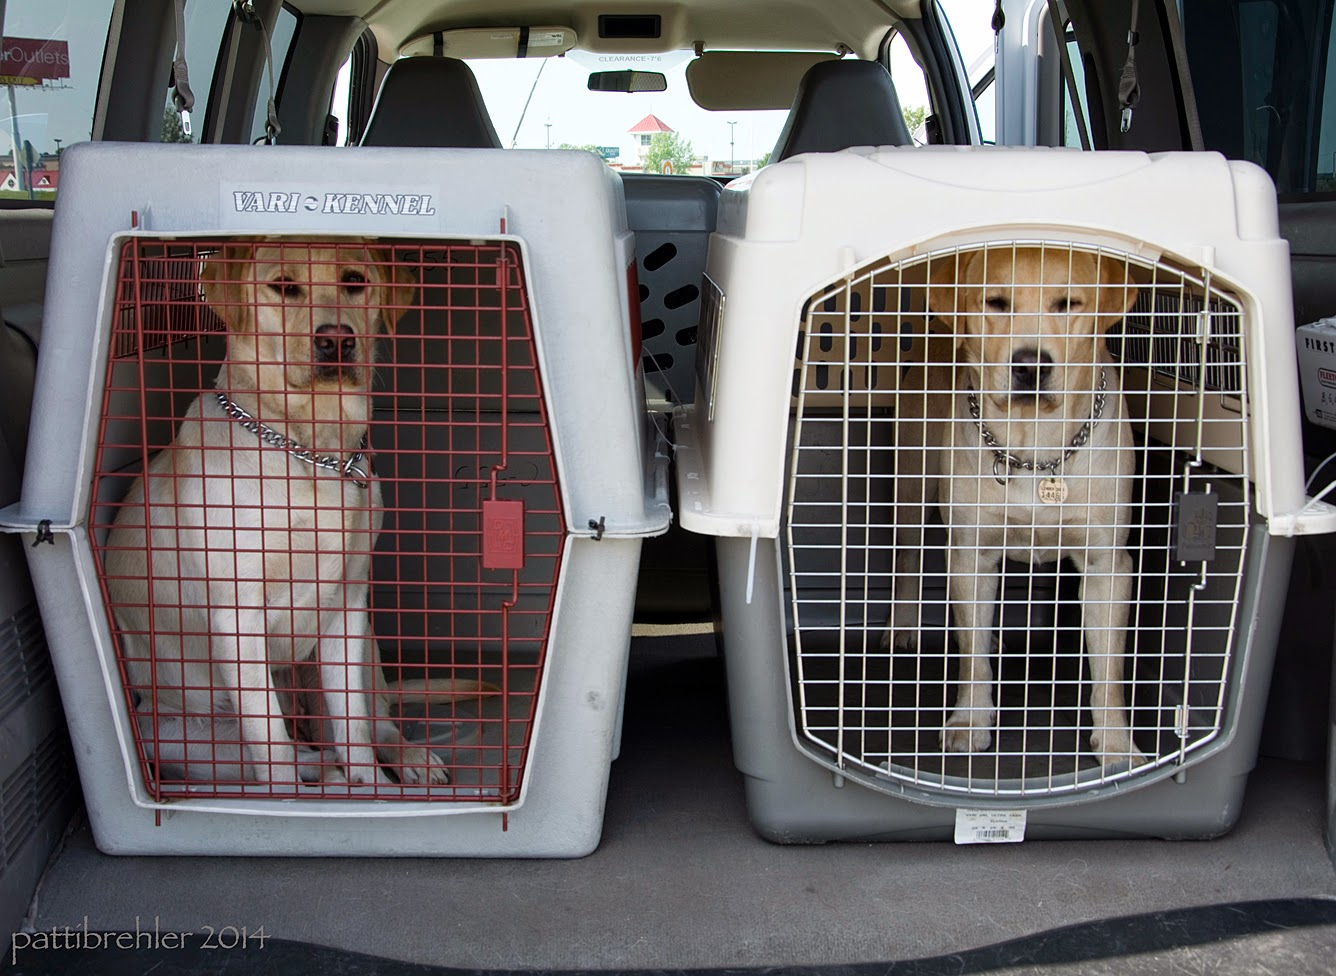 Two airline crates in the back of a van hold two yellow labs. The lab on the left is sitting down, the lab on the right is standing. Both are looking at the camera.